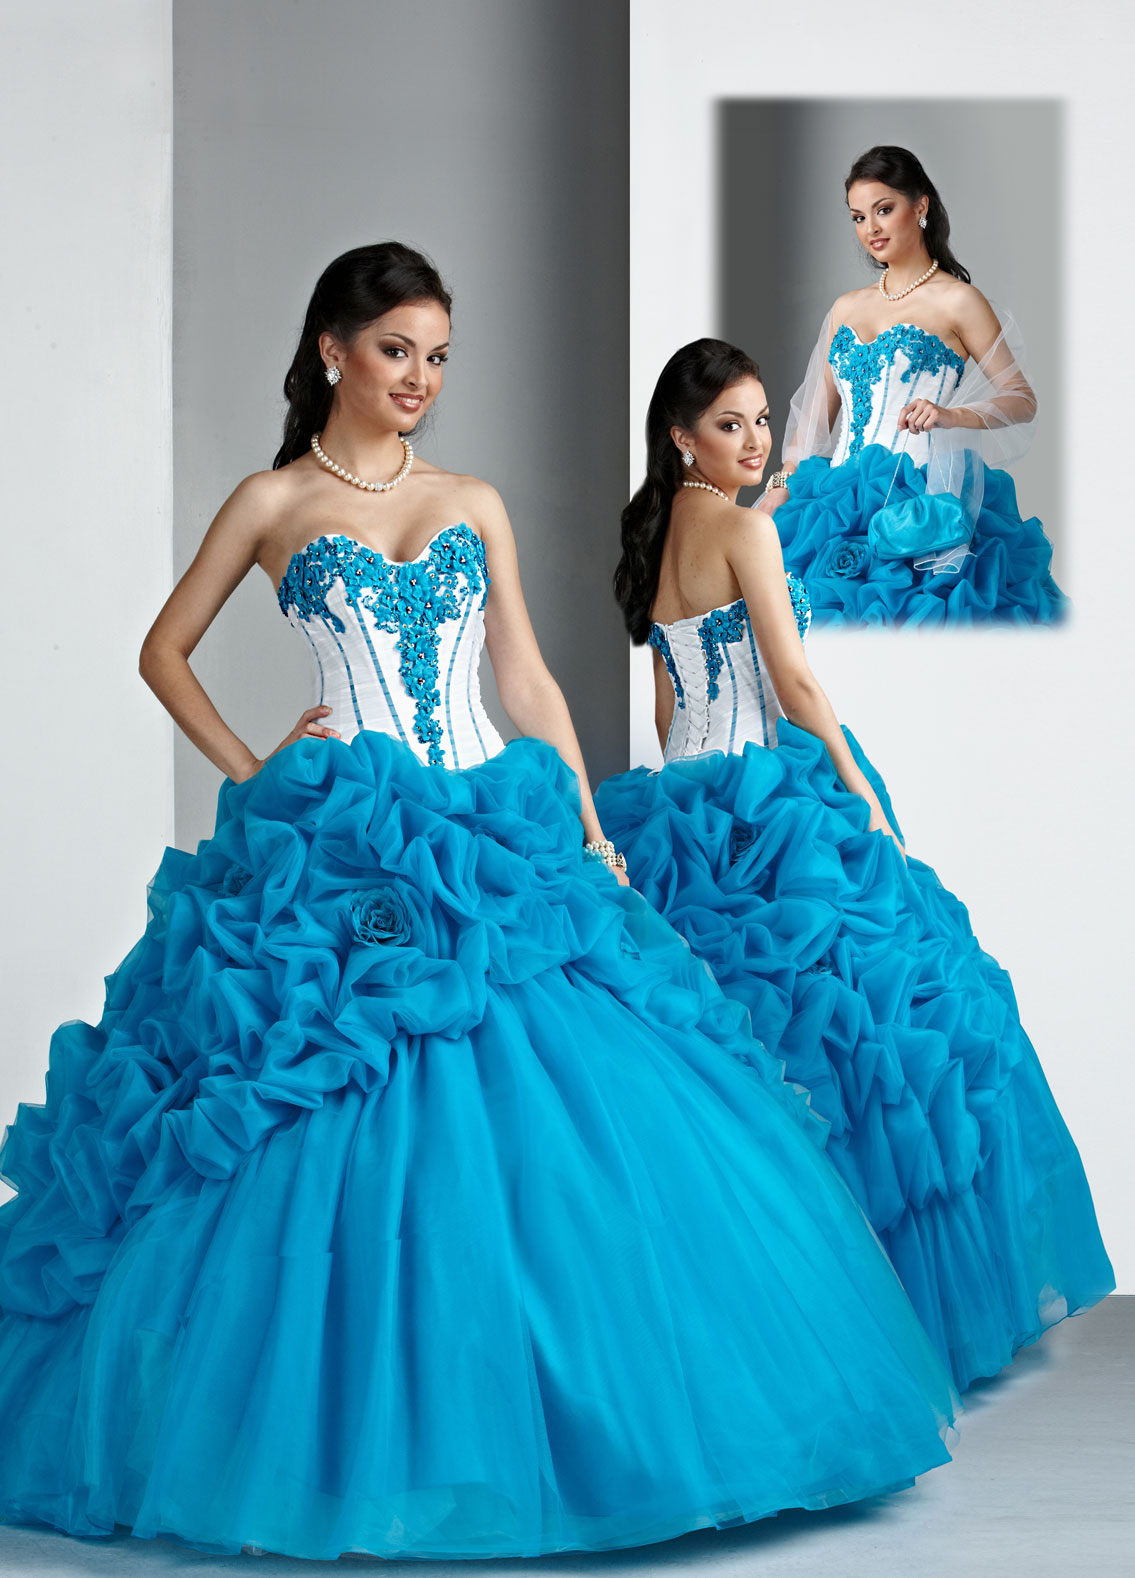 Turquoise And White Strapless Sweetheart Lace Up Floor Length Ball Gown Quinceanera Dresses With Appliques And Ruffles